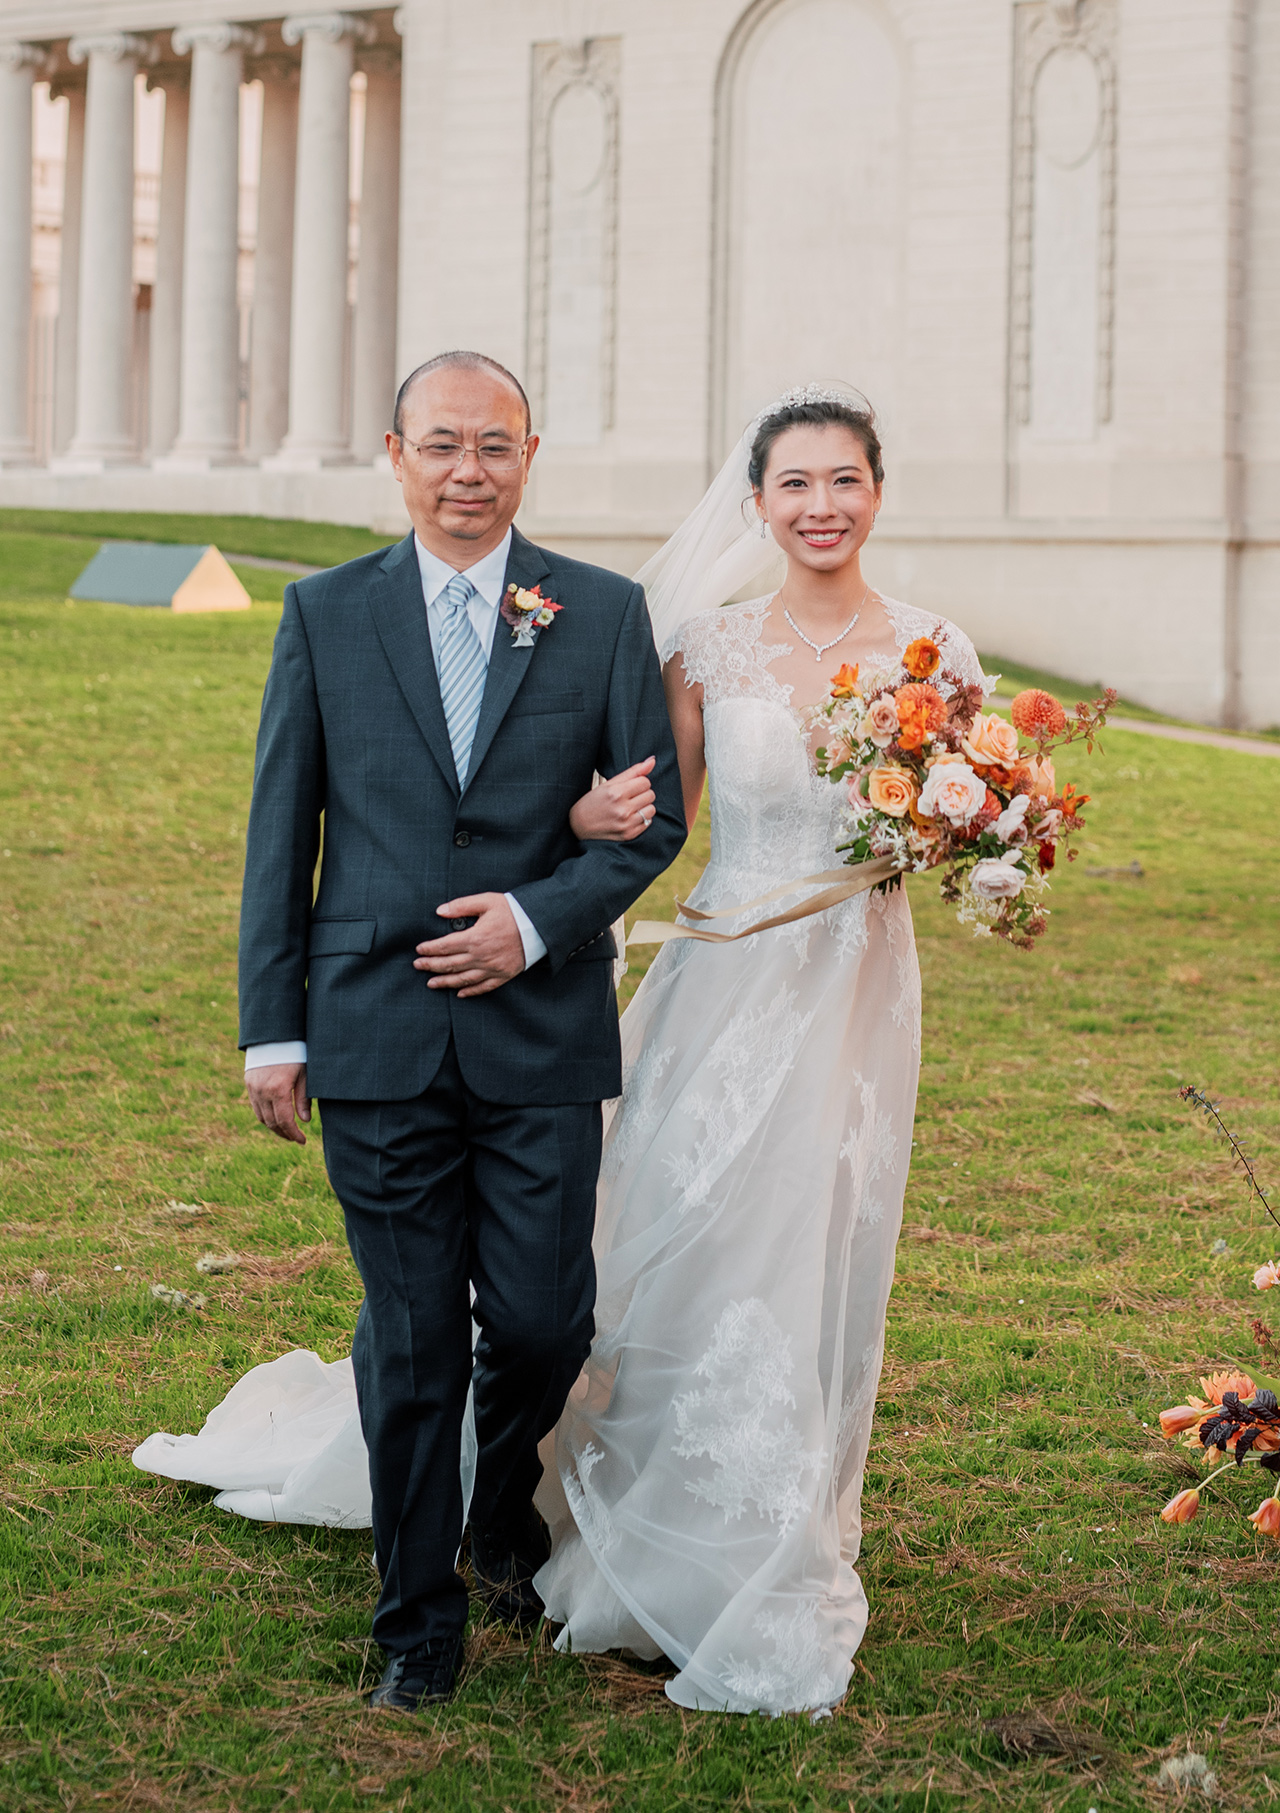 outdoor wedding ceremony processional father walking with bride